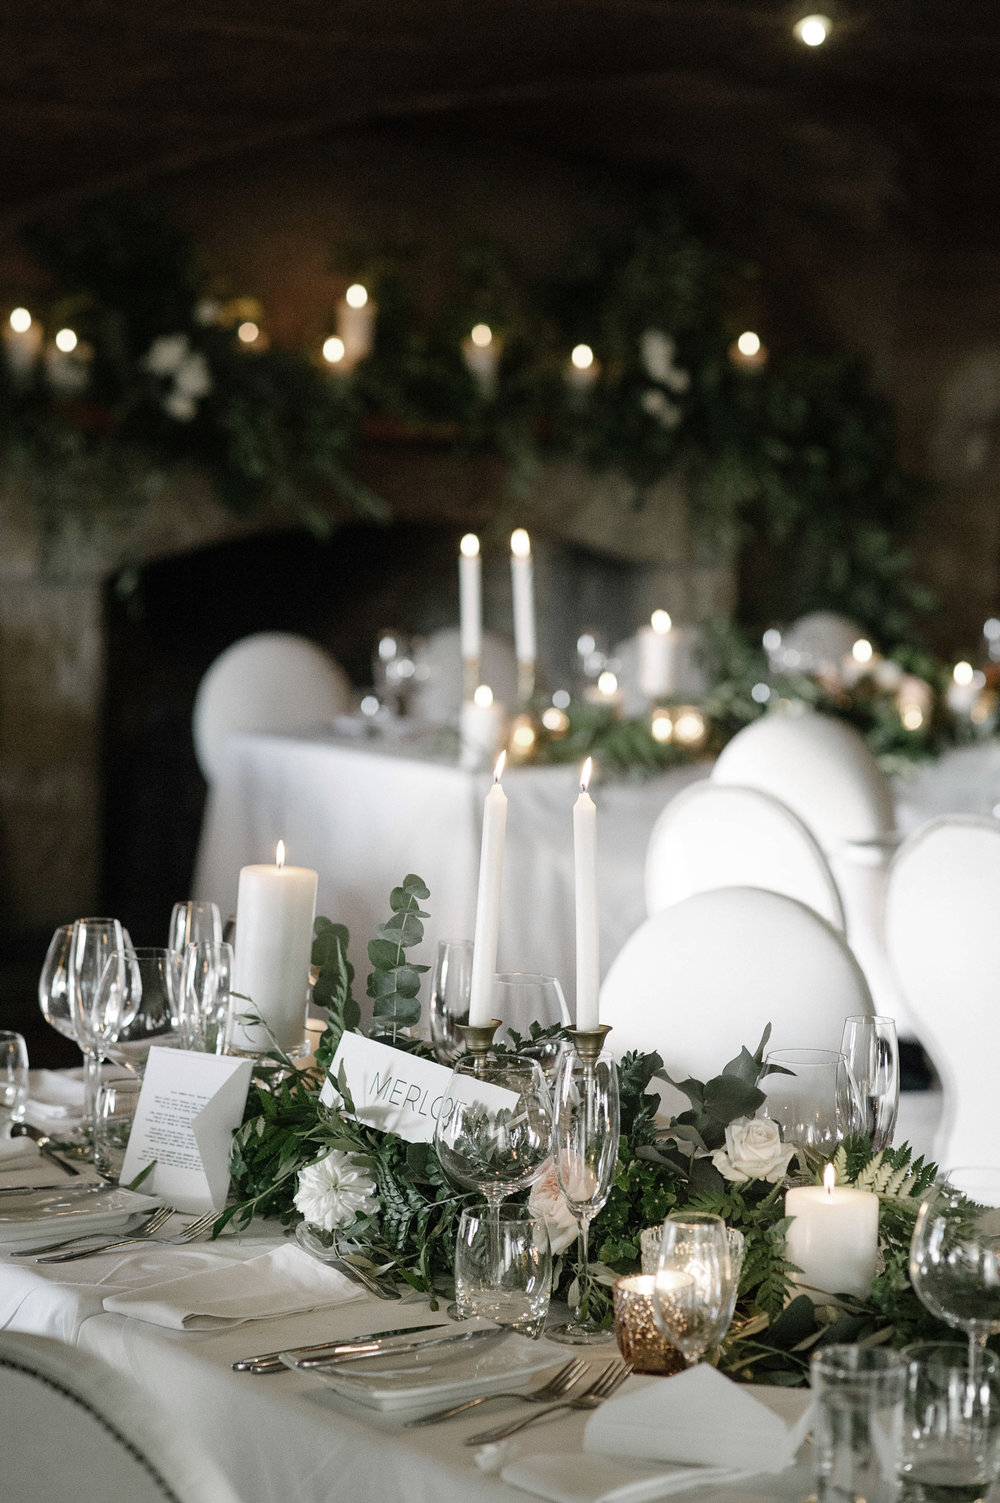 Wedding-Table-Decor-Greenery.jpg